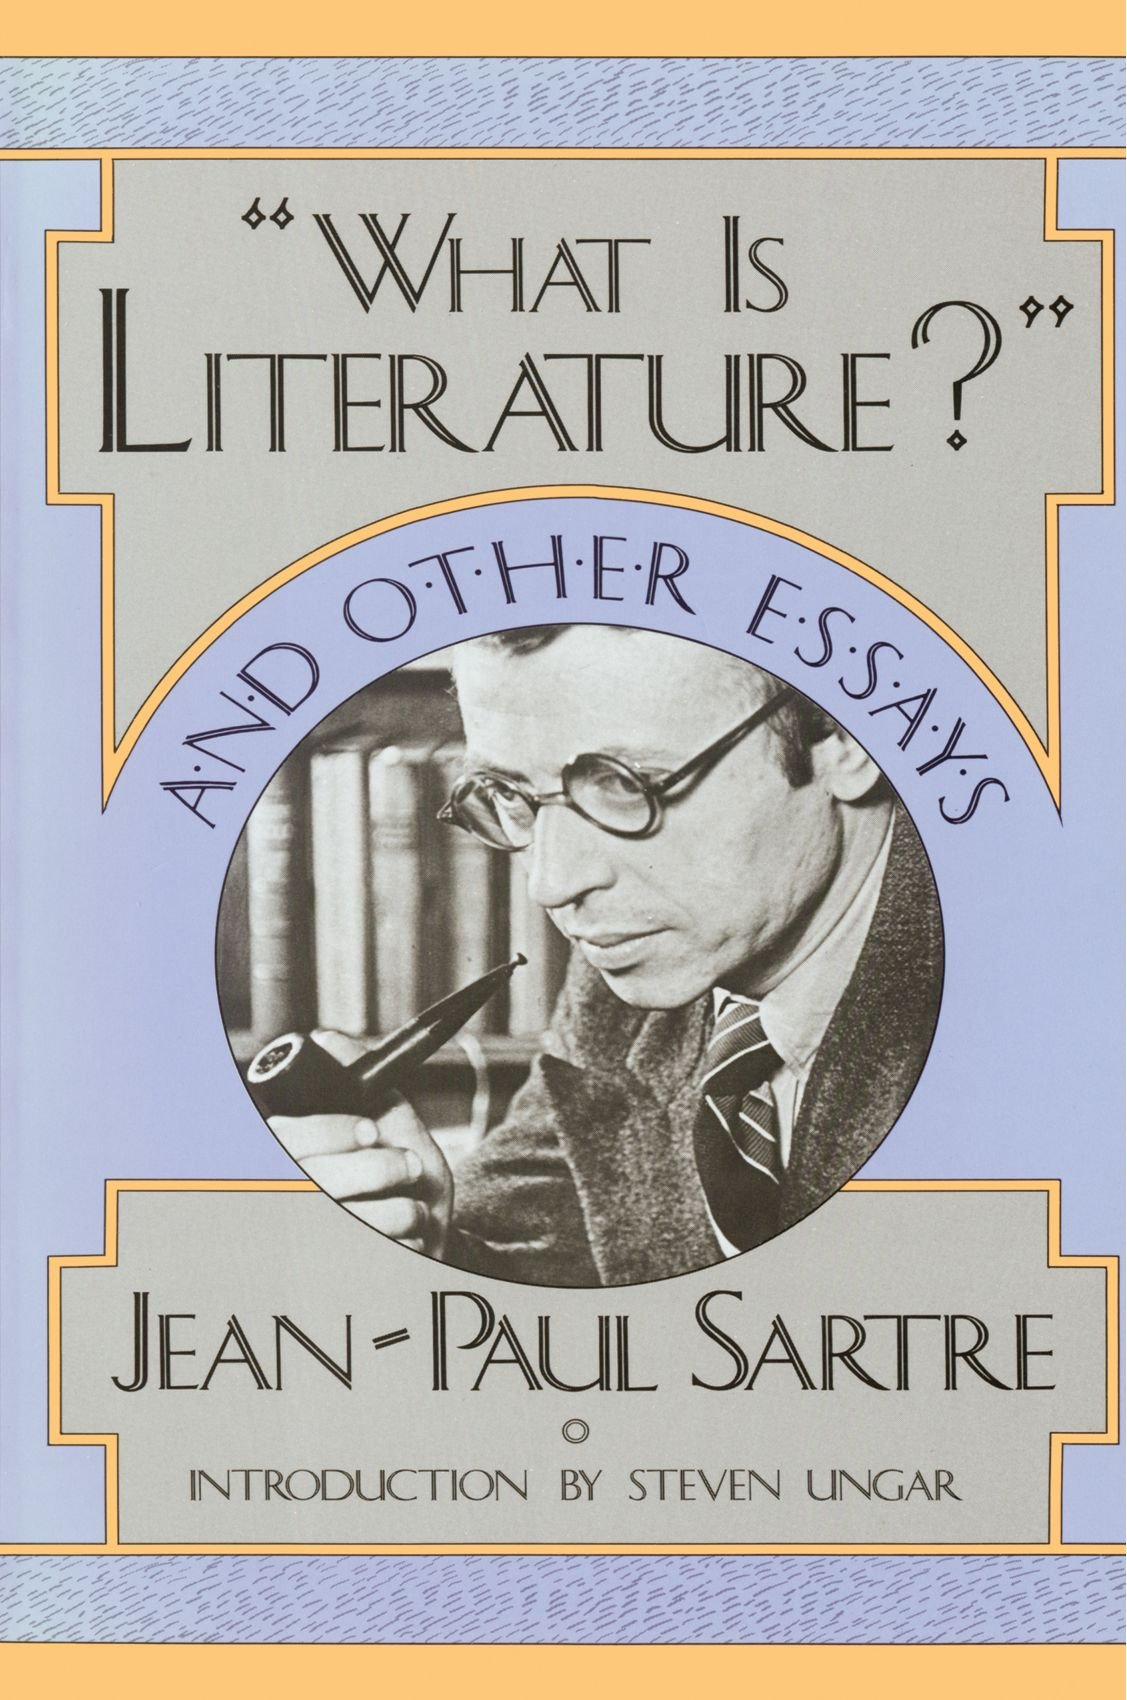 com what is literature and other essays 9780674950849 and other essays 9780674950849 jean paul sartre steven ungar books